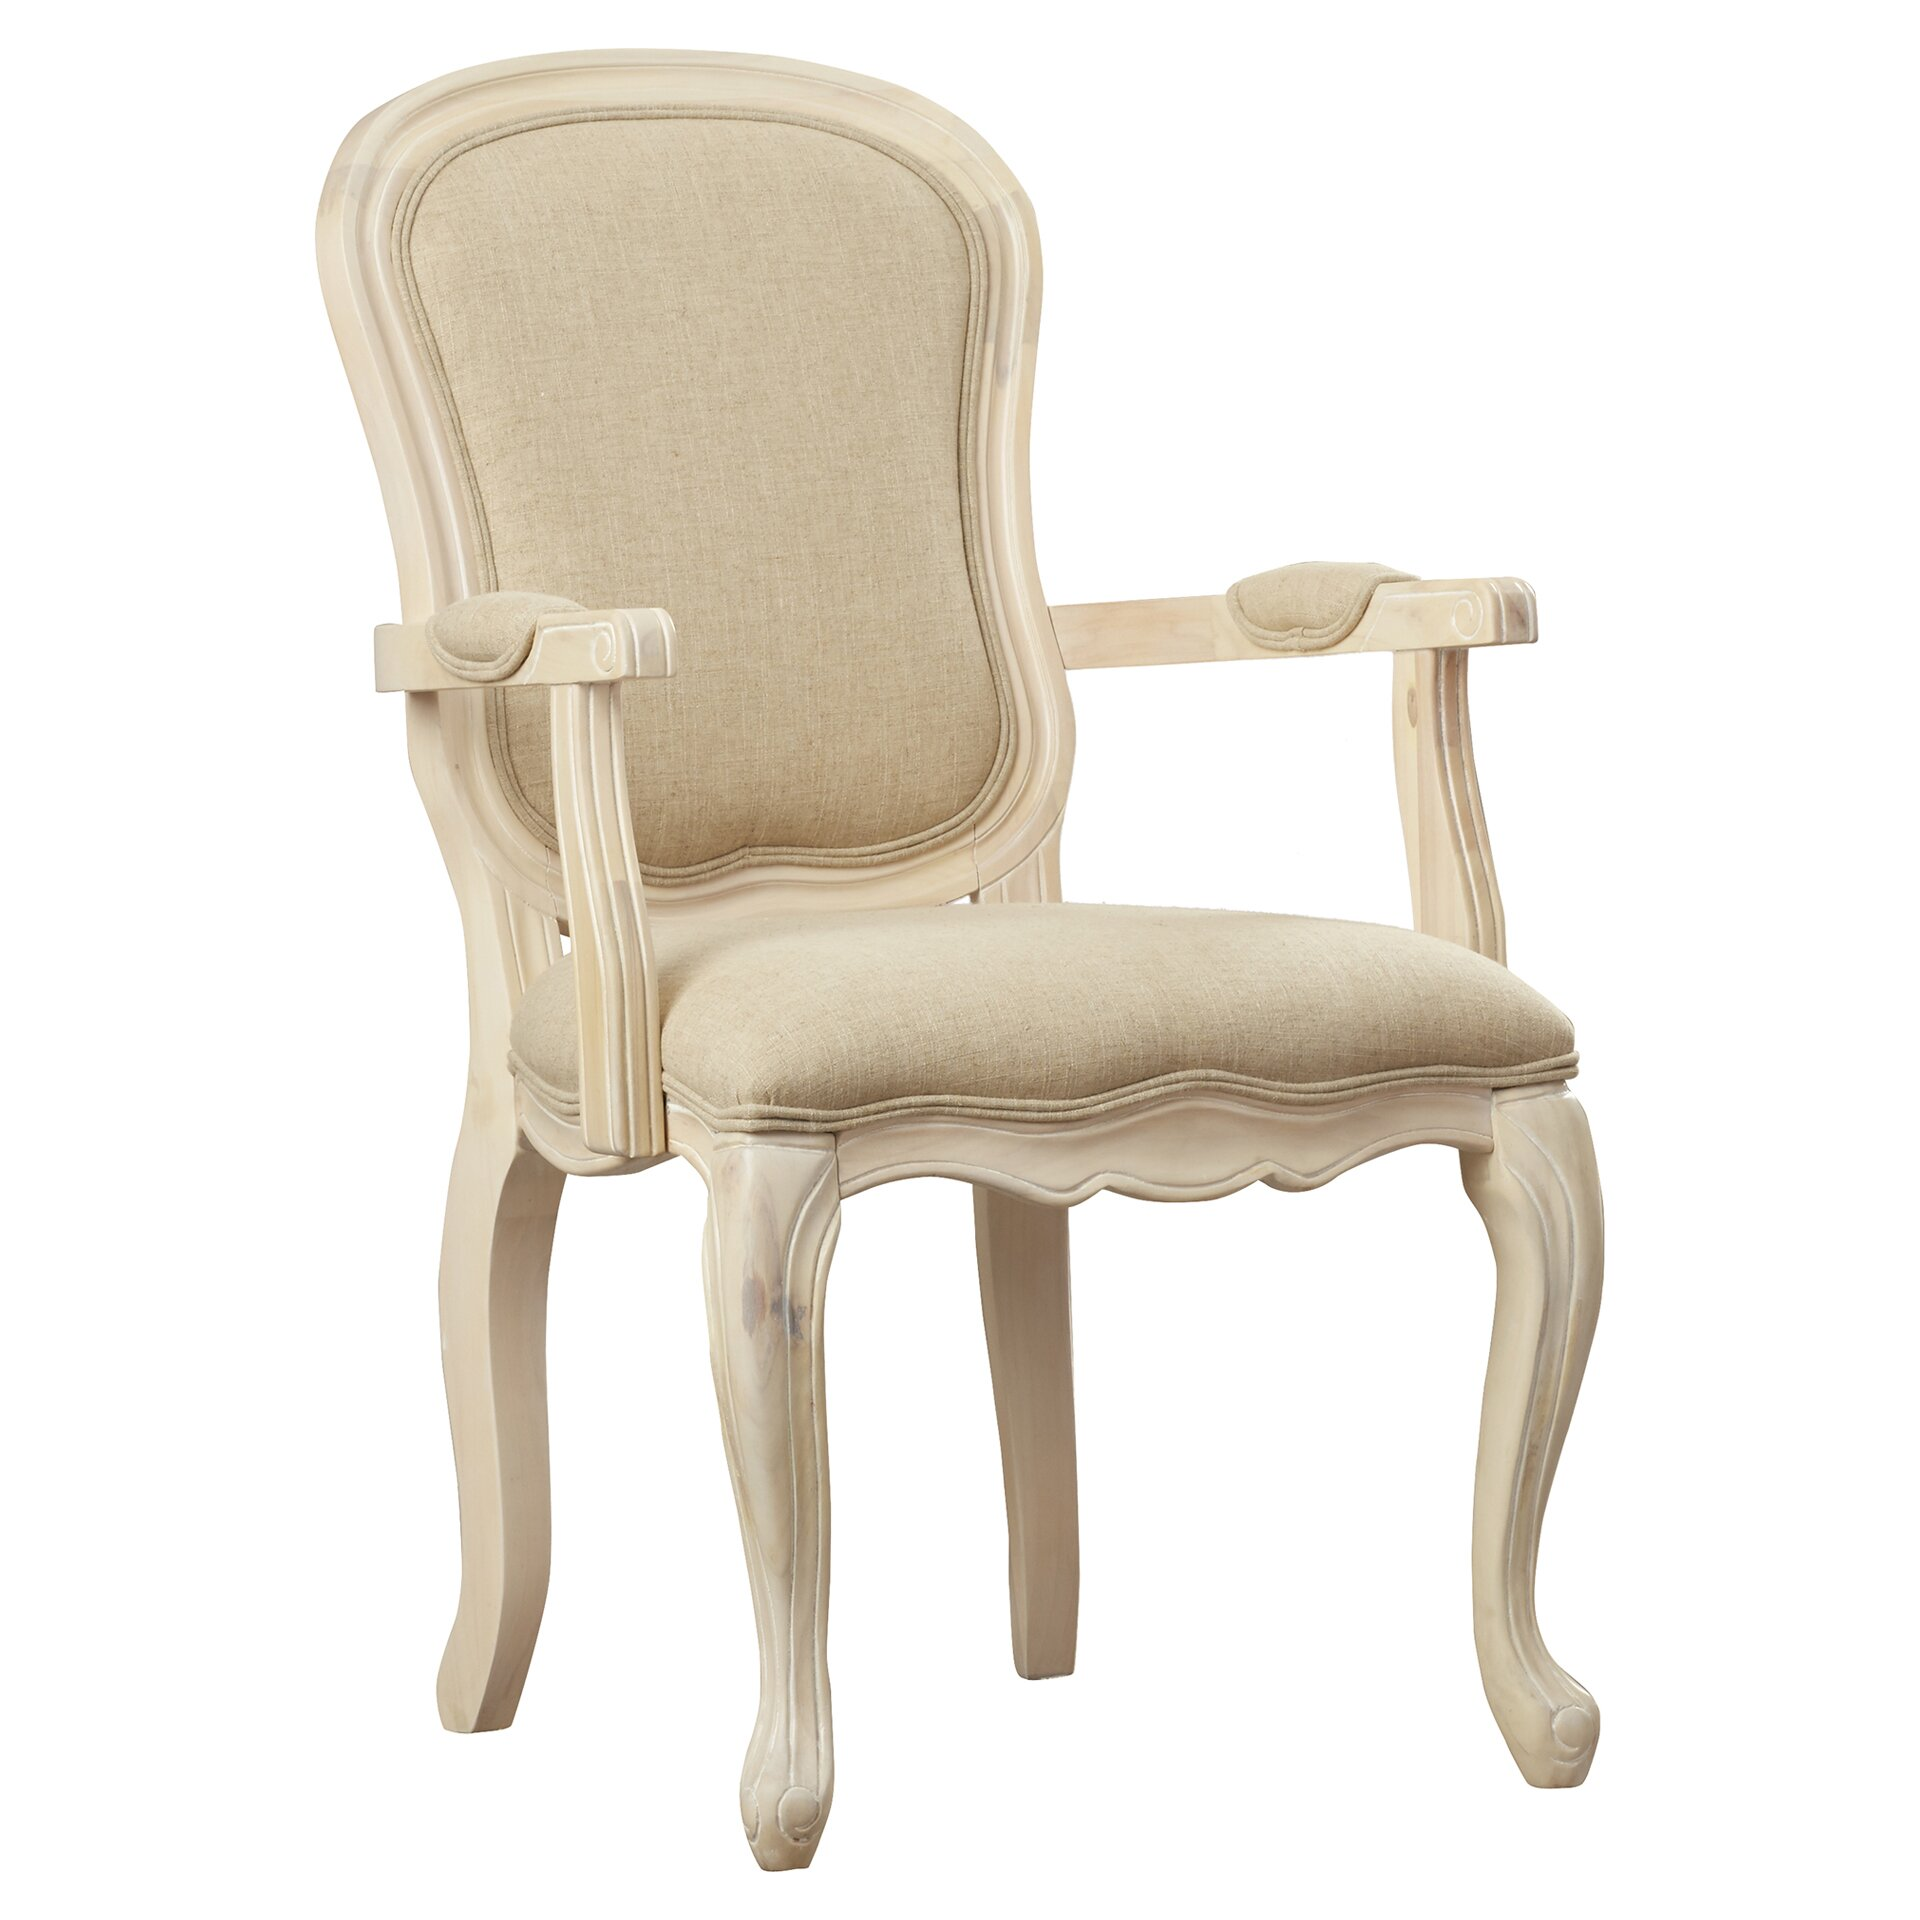 Lark Manor Saint Quentin Accent Arm Chair amp Reviews Wayfair : Saint Quentin Accent Arm Chair LARK1980 from www.wayfair.com size 1920 x 1920 jpeg 326kB